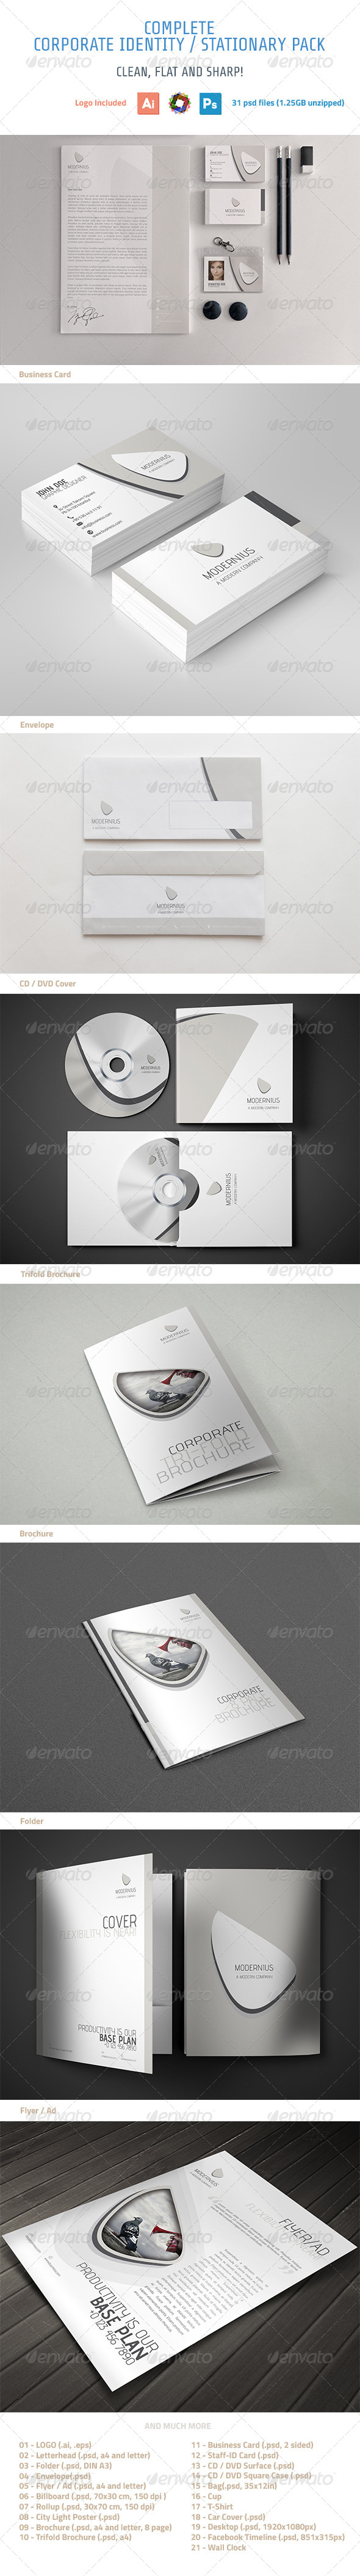 GraphicRiver Corporate Identity 5782616